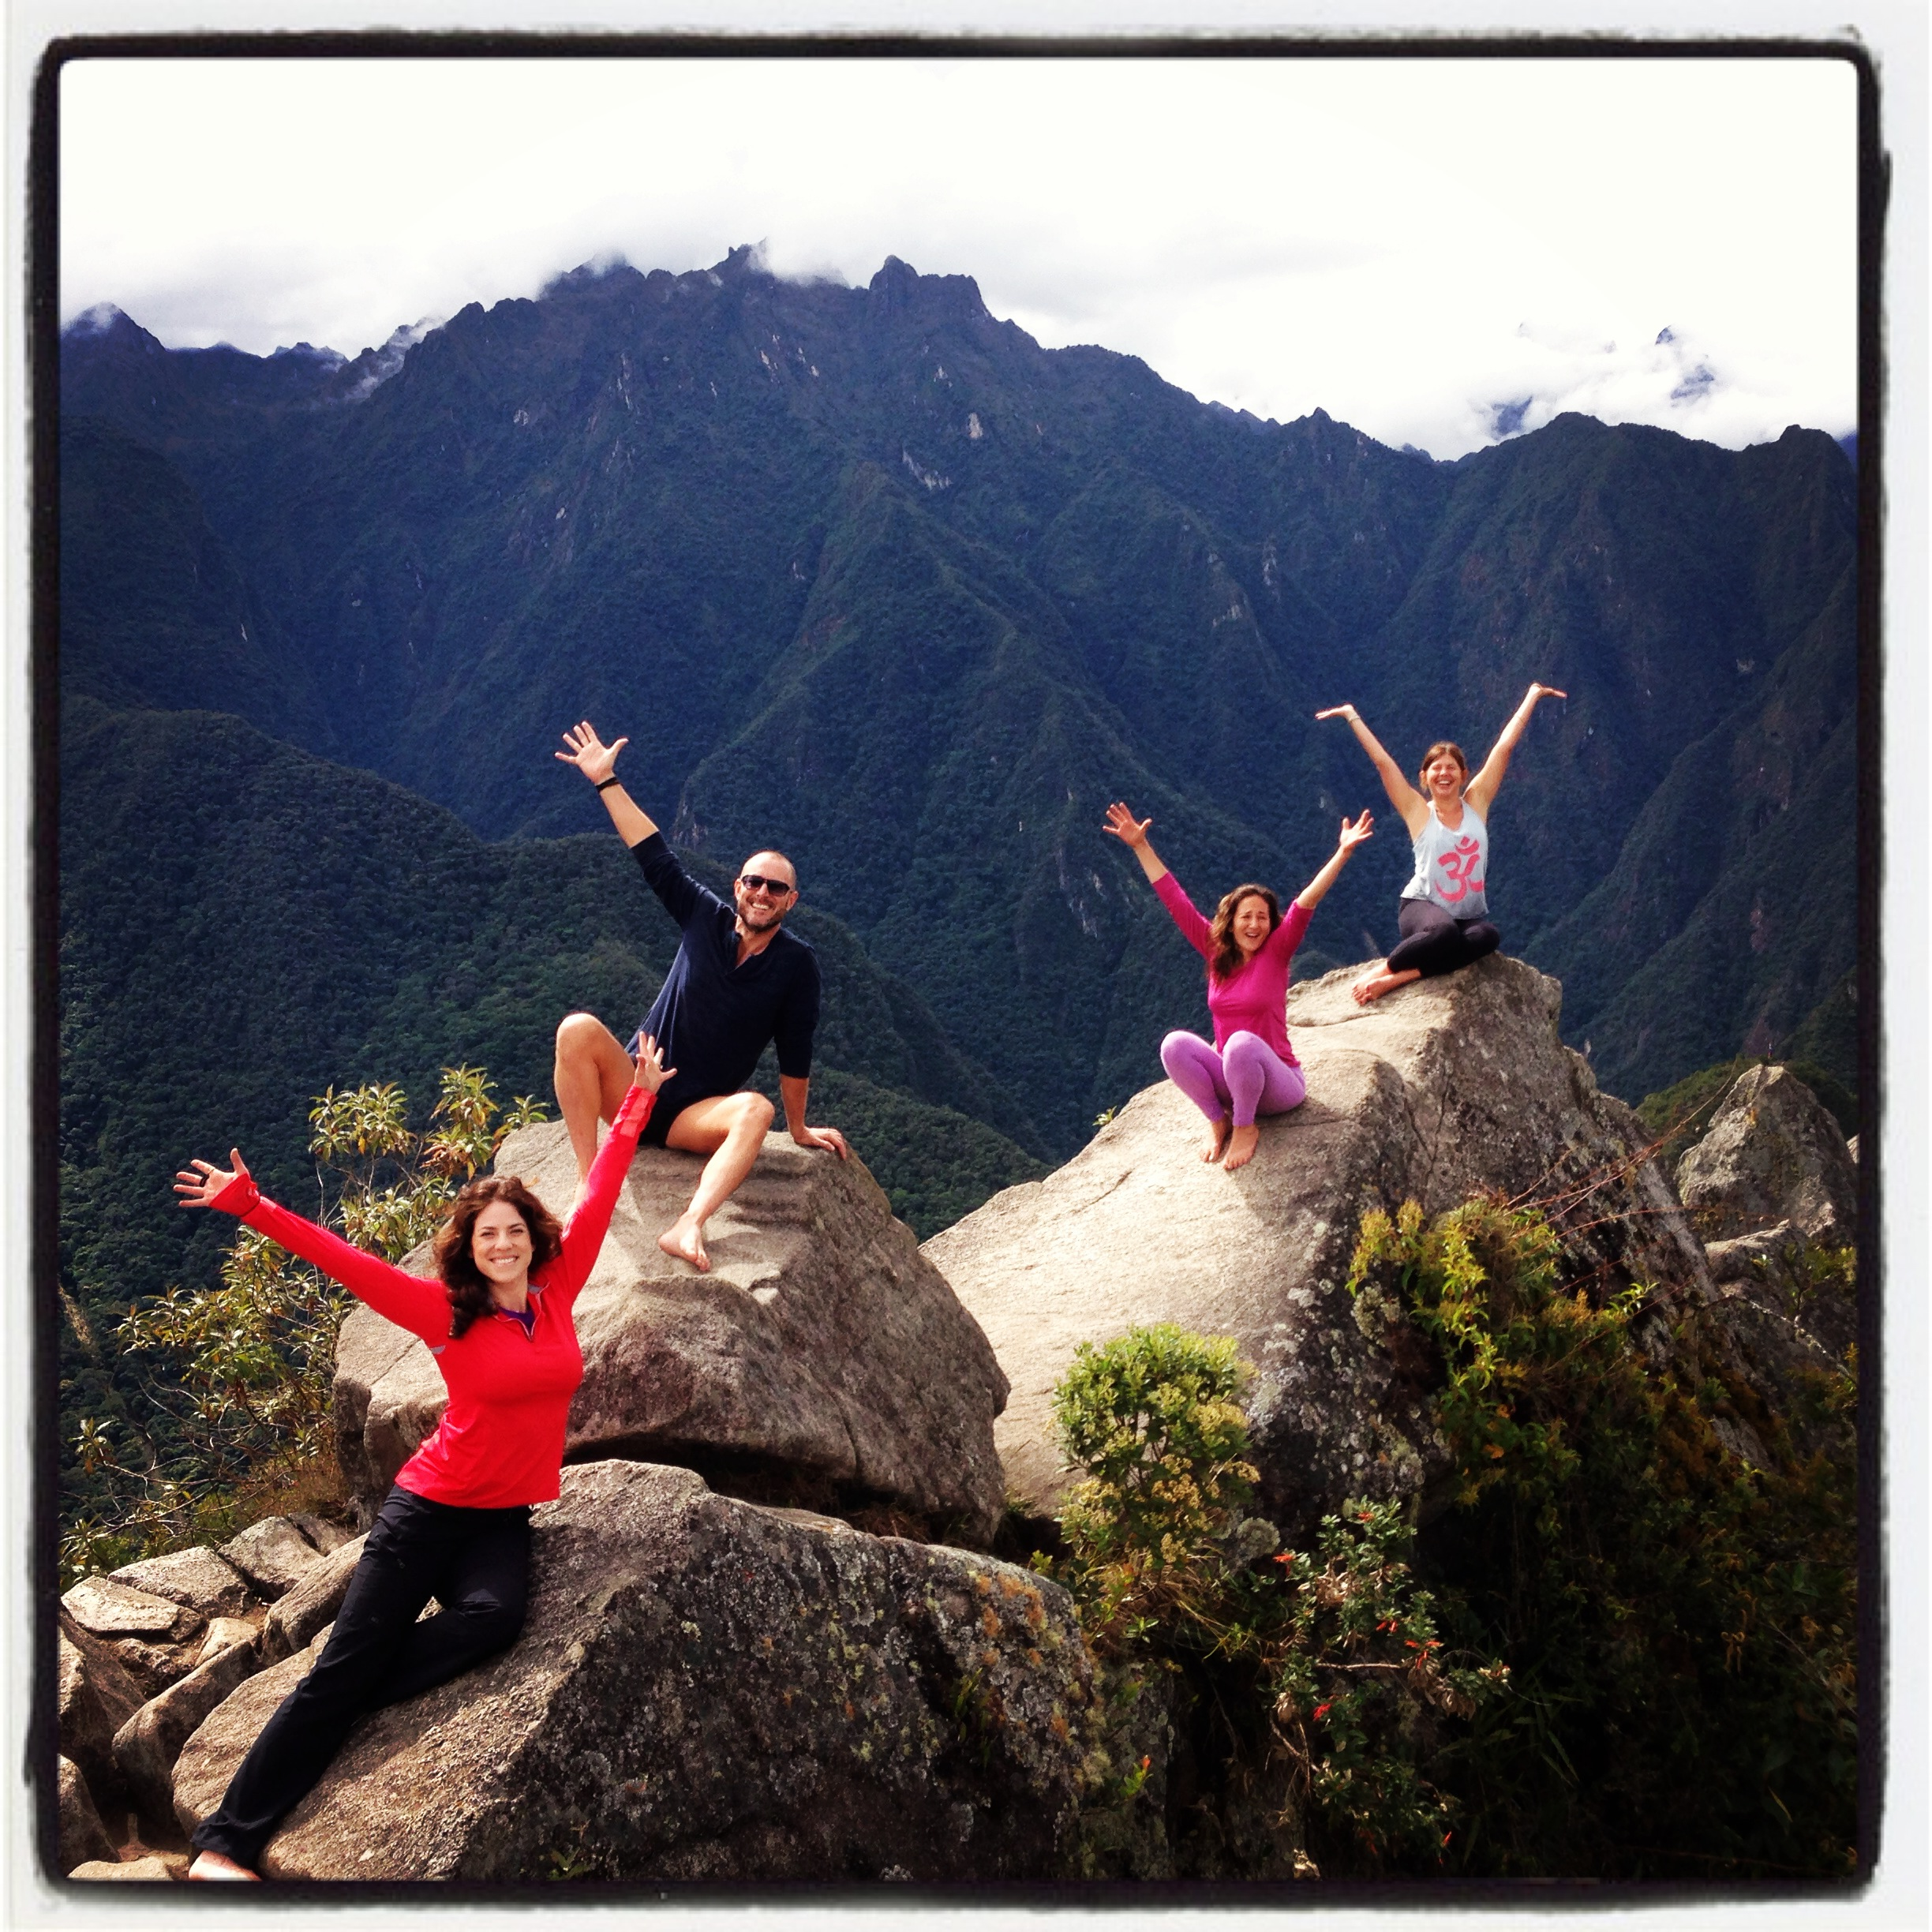 Rochelle on the top of Huayna Picchu in Peru with friends